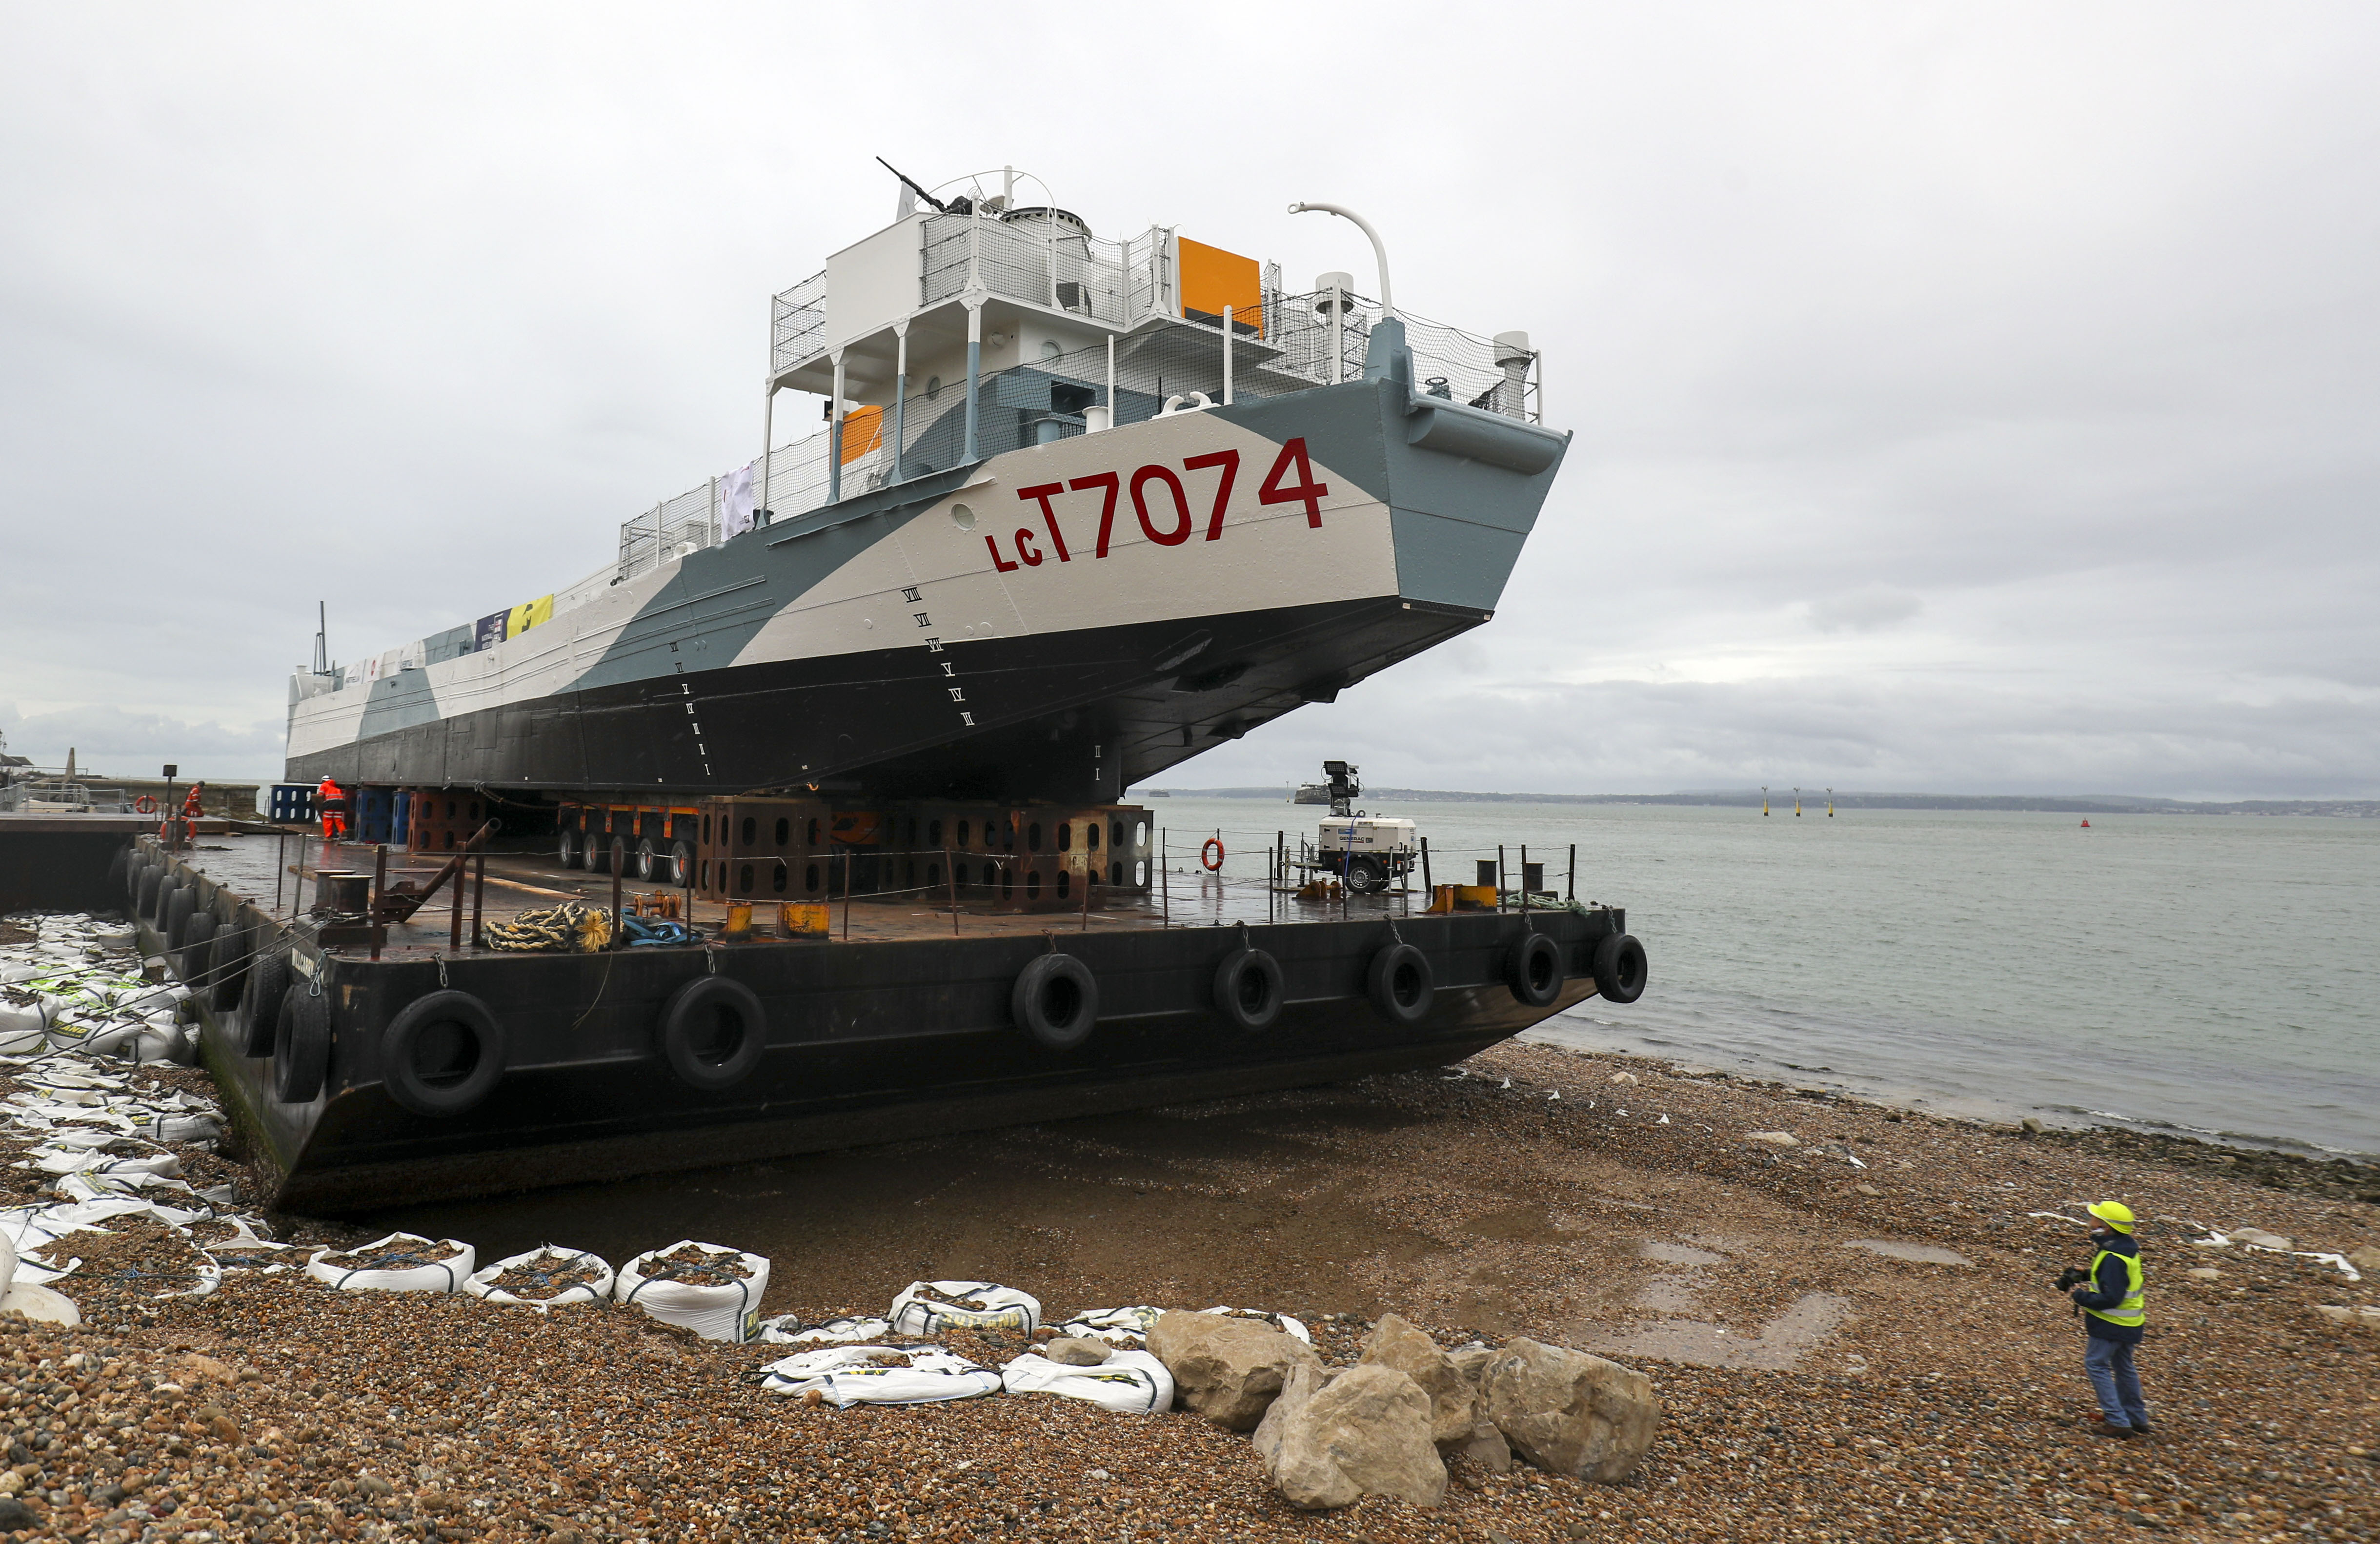 Restored World War Two landing craft LCT 7074 is transported from from the Naval Base in Portsmouth to its final resting place at the D-Day Story at Southsea. (Photo by Steve Parsons/PA Images via Getty Images)